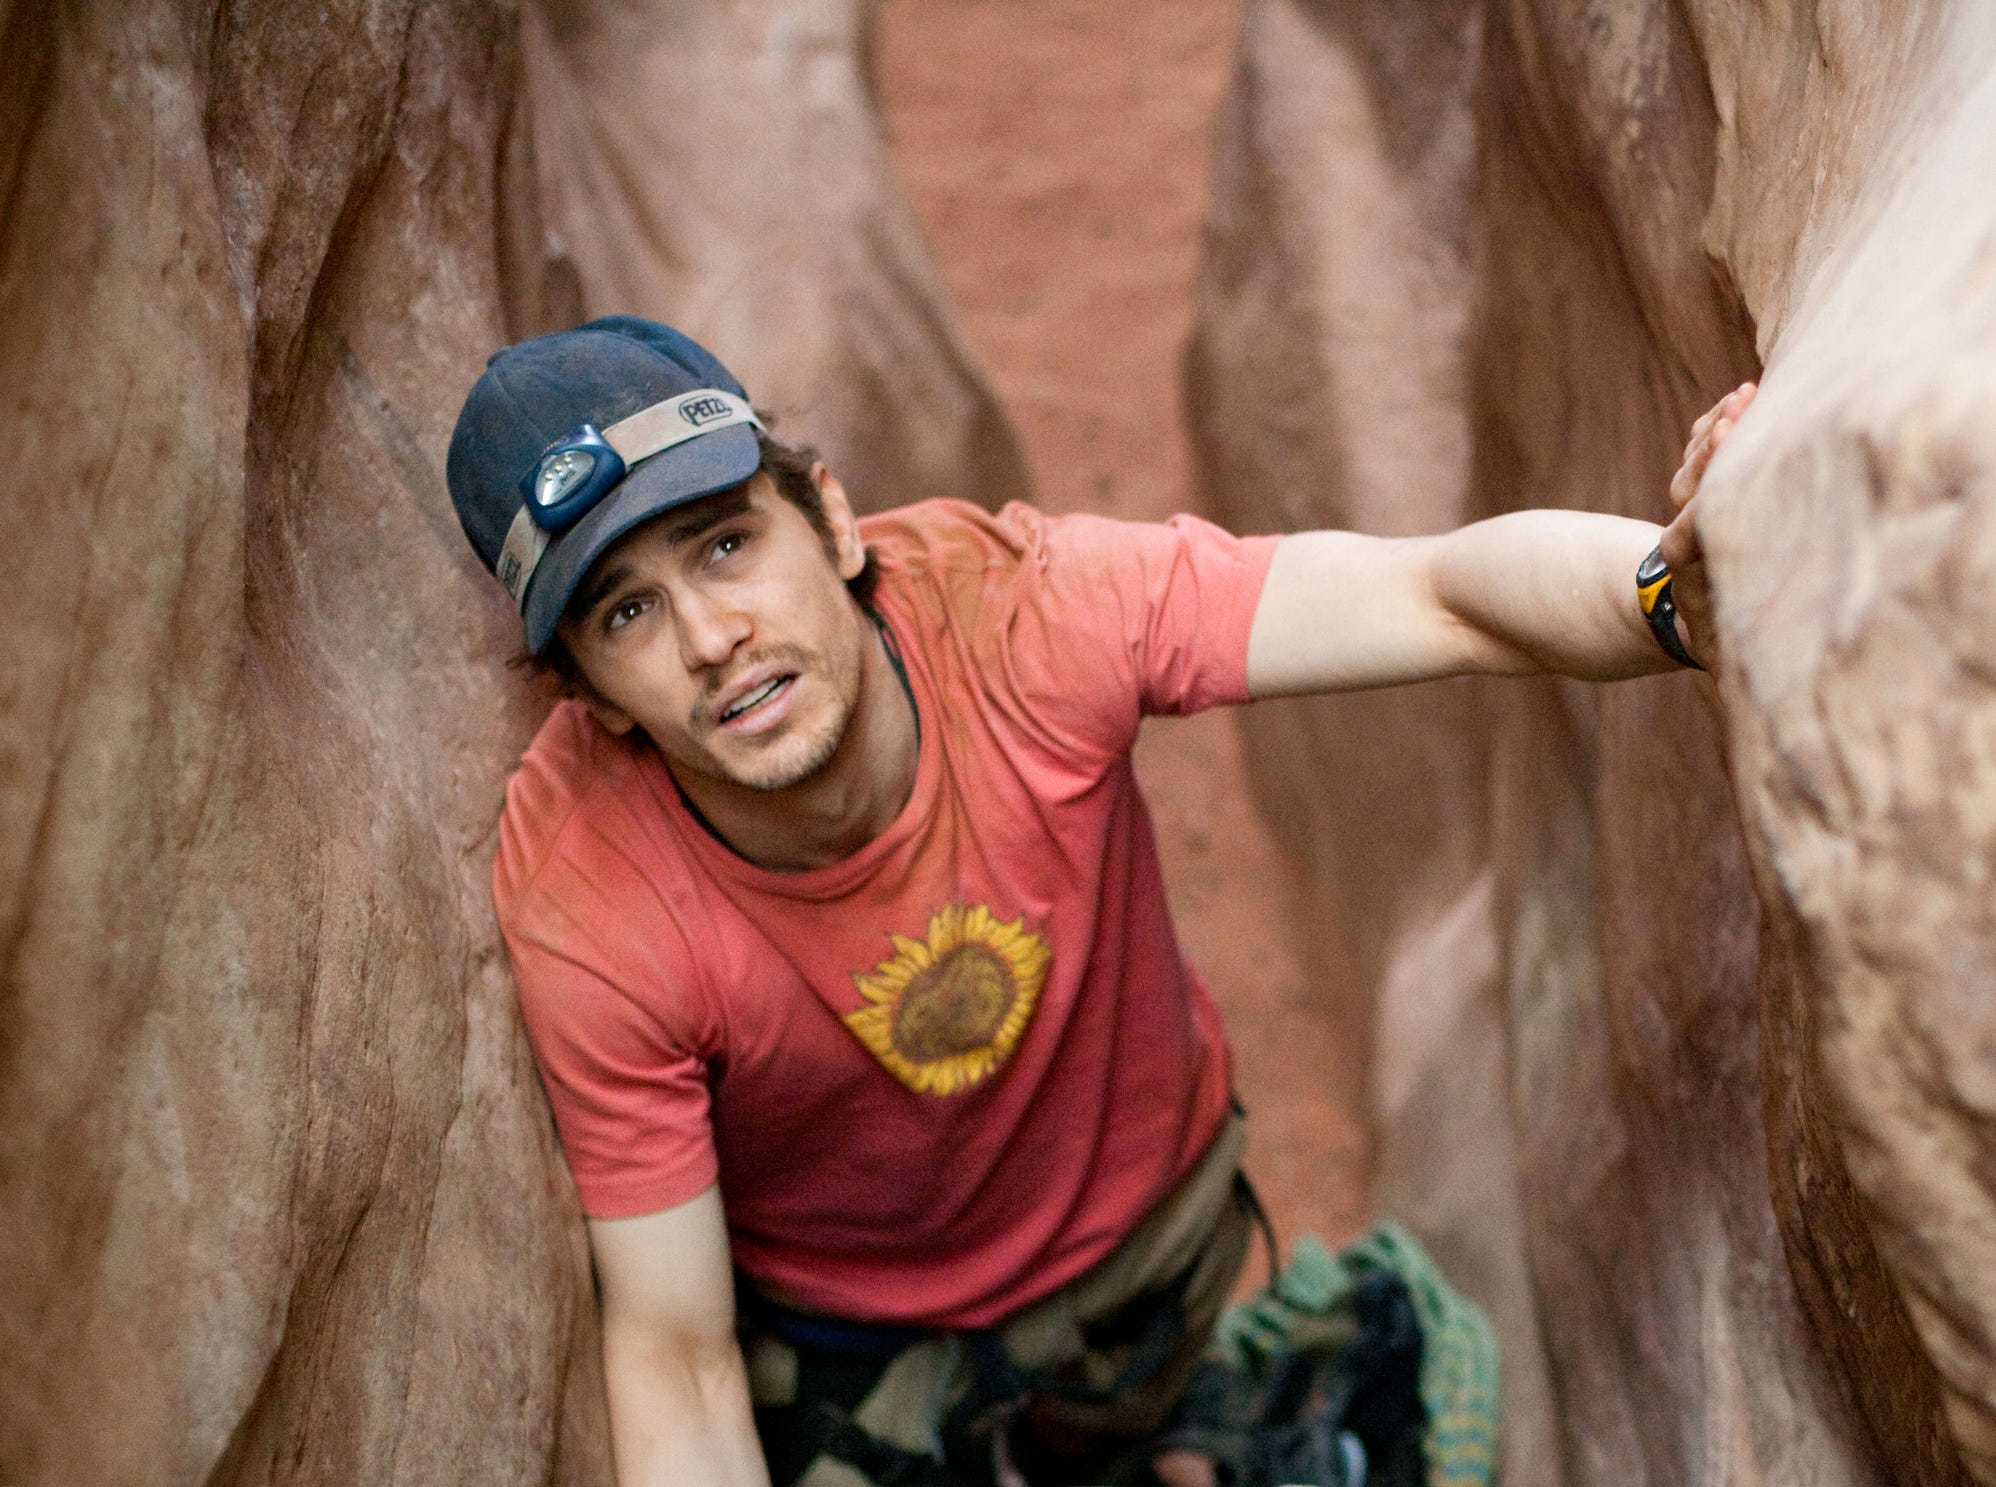 """James Franco in a scene from the motion picture """"127 Hours.""""  Photo by Chuck Zlotnick, Fox Searchlight [Via MerlinFTP Drop]"""